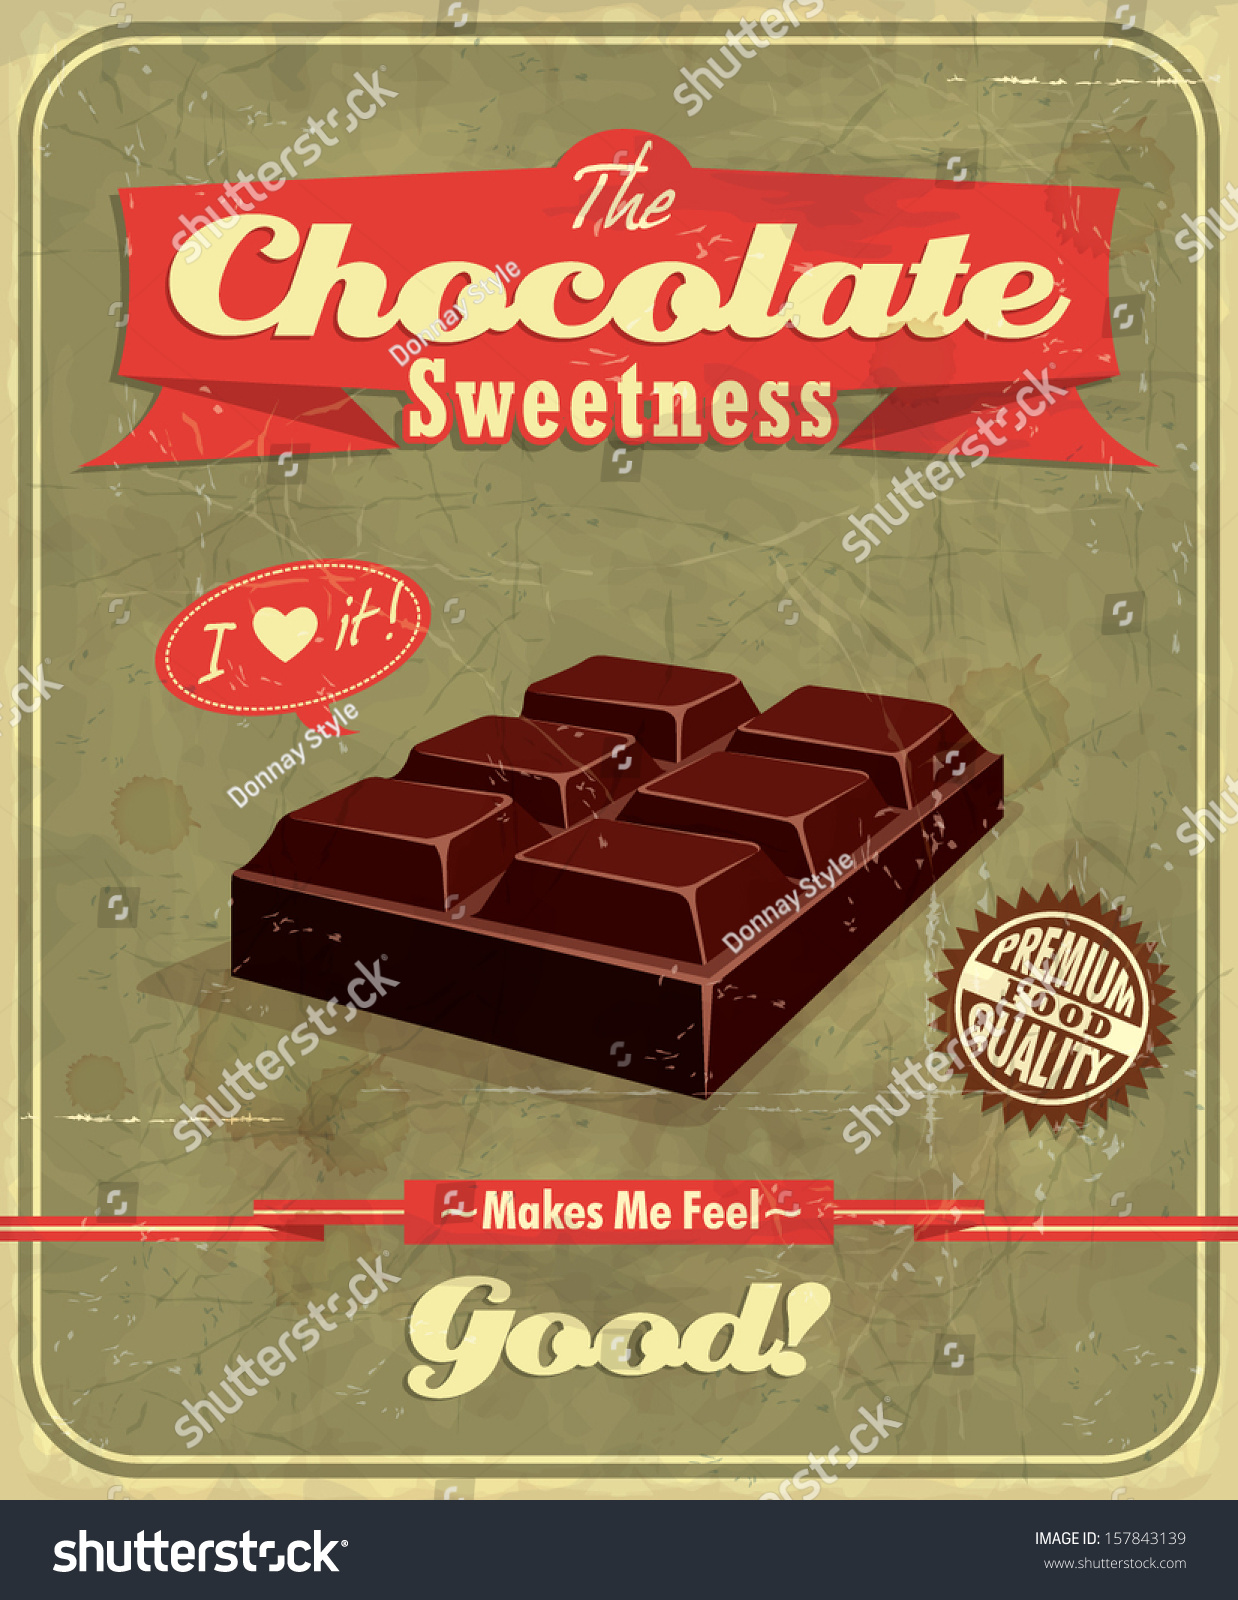 Vintage Chocolate Poster Design Stock Vector 157843139 - Shutterstock